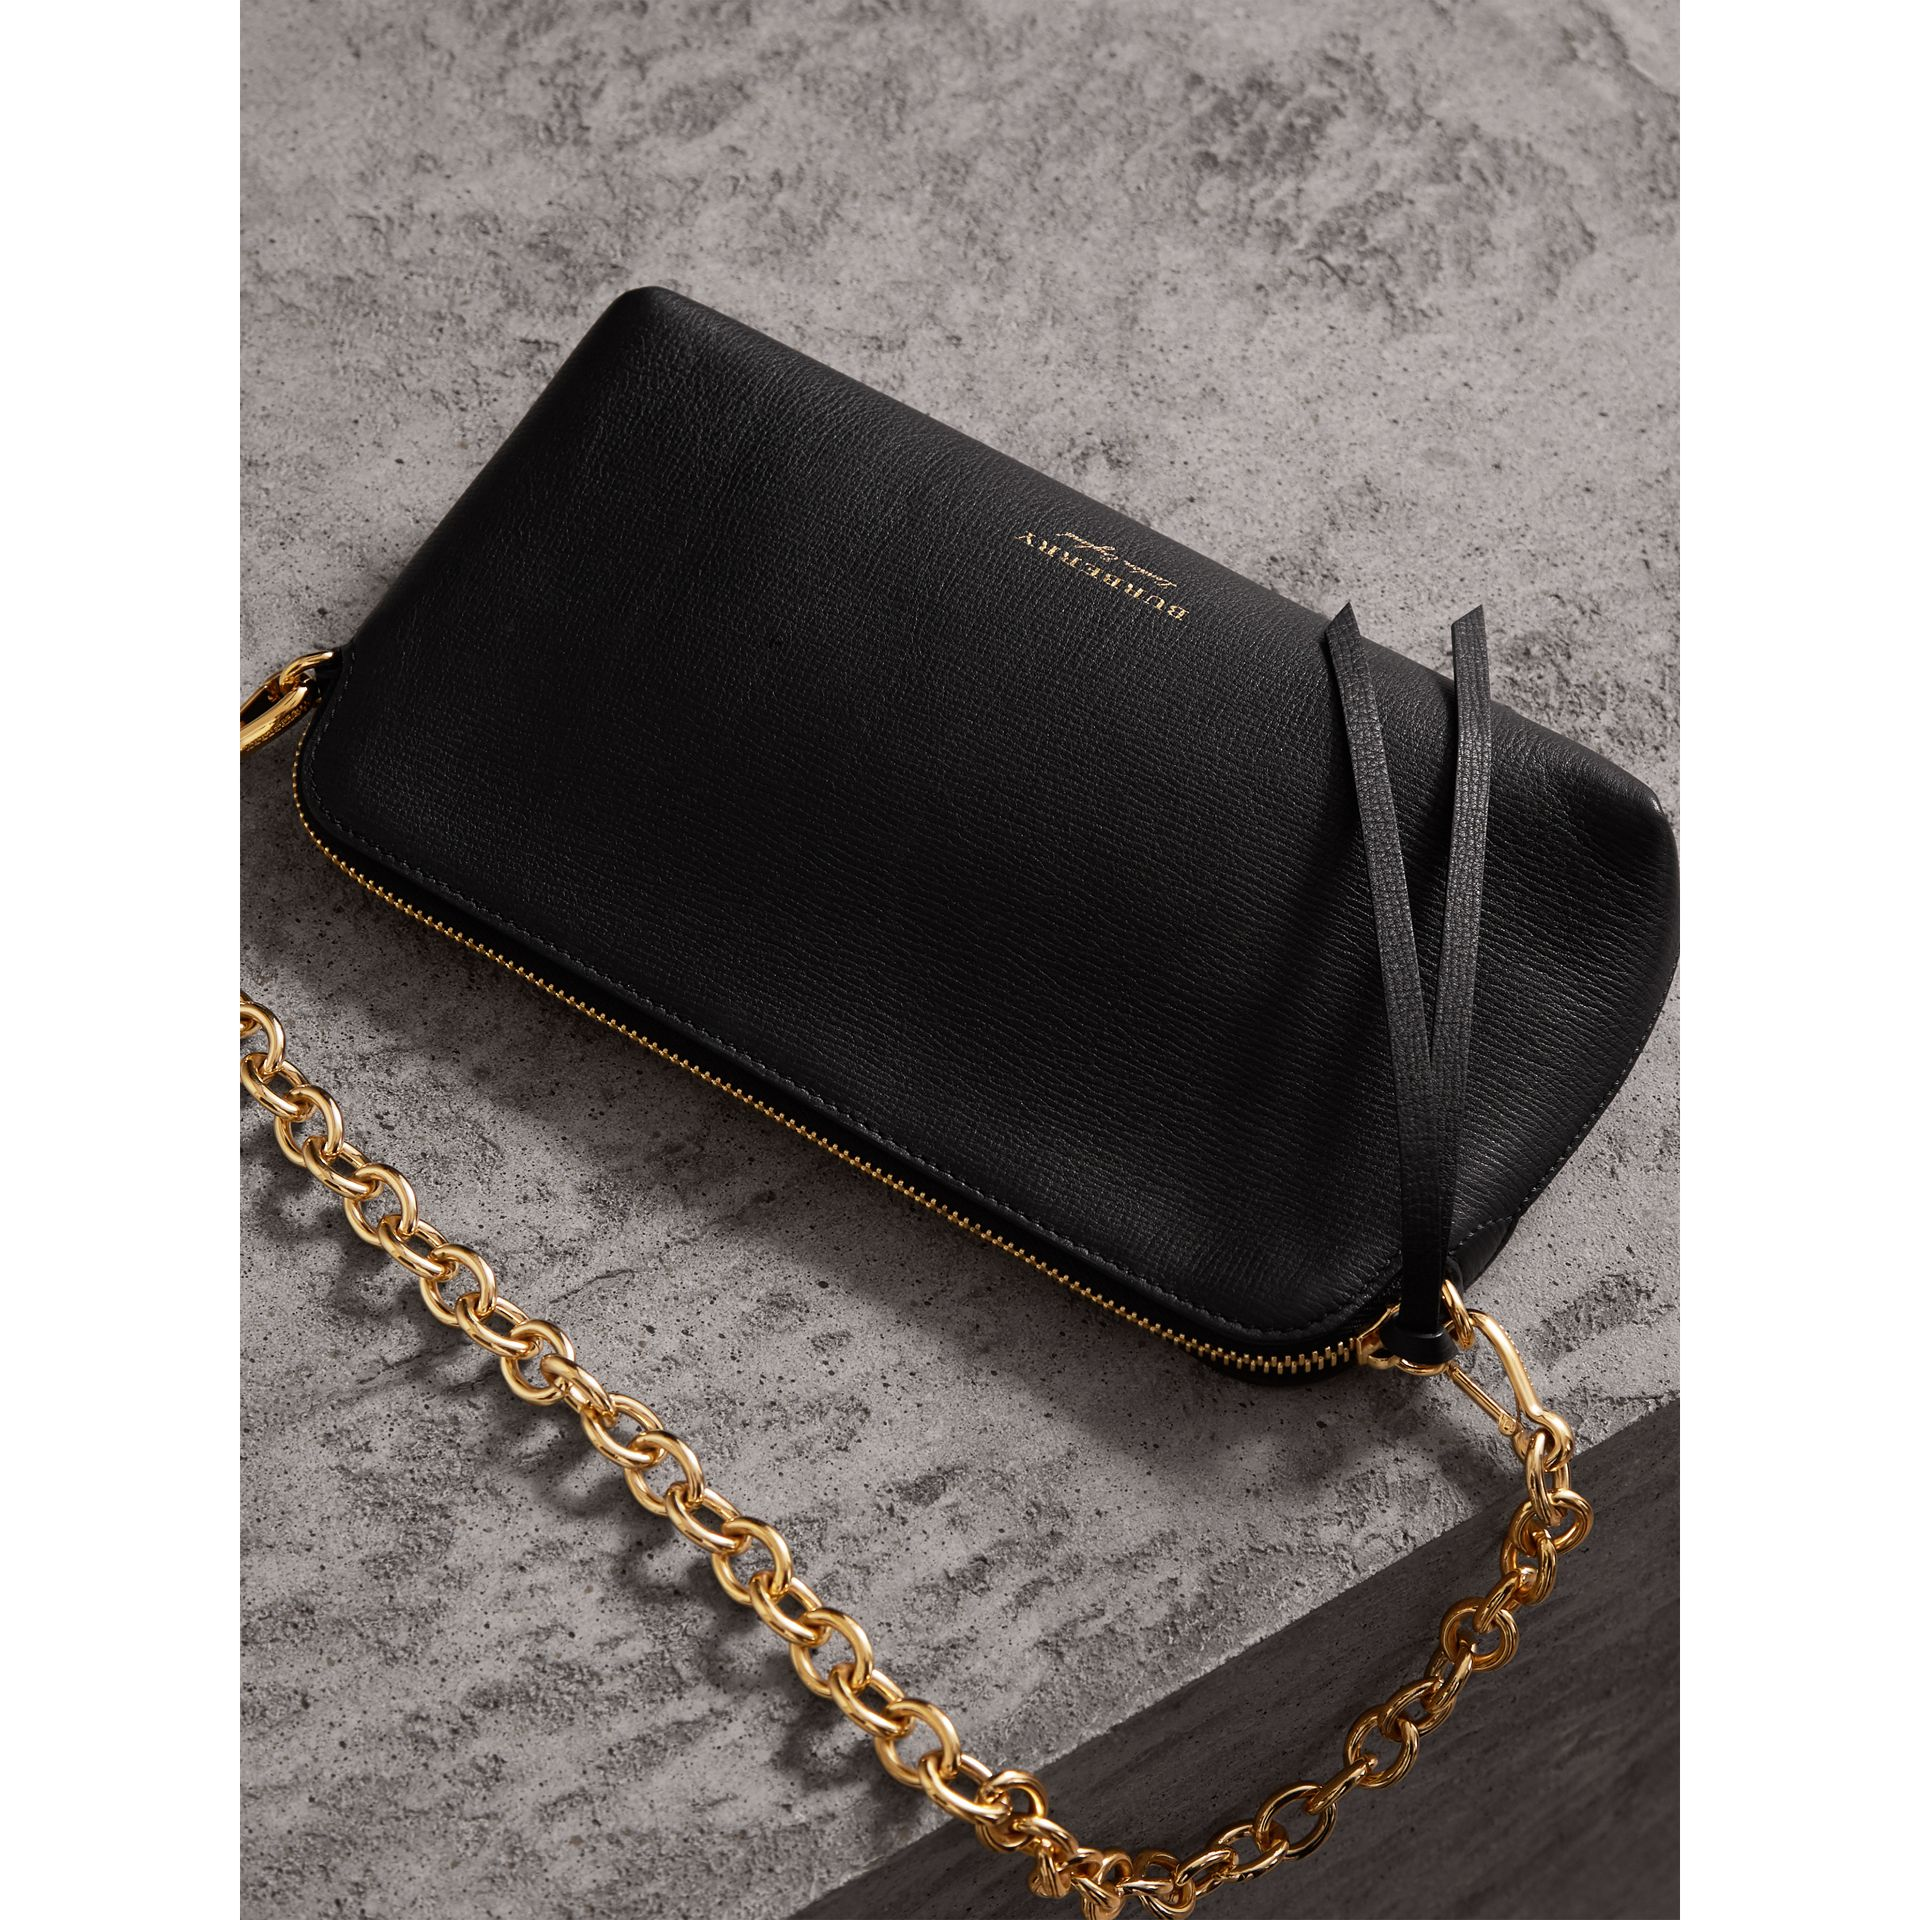 Grainy Leather Clutch Bag in Black - Women | Burberry - gallery image 6